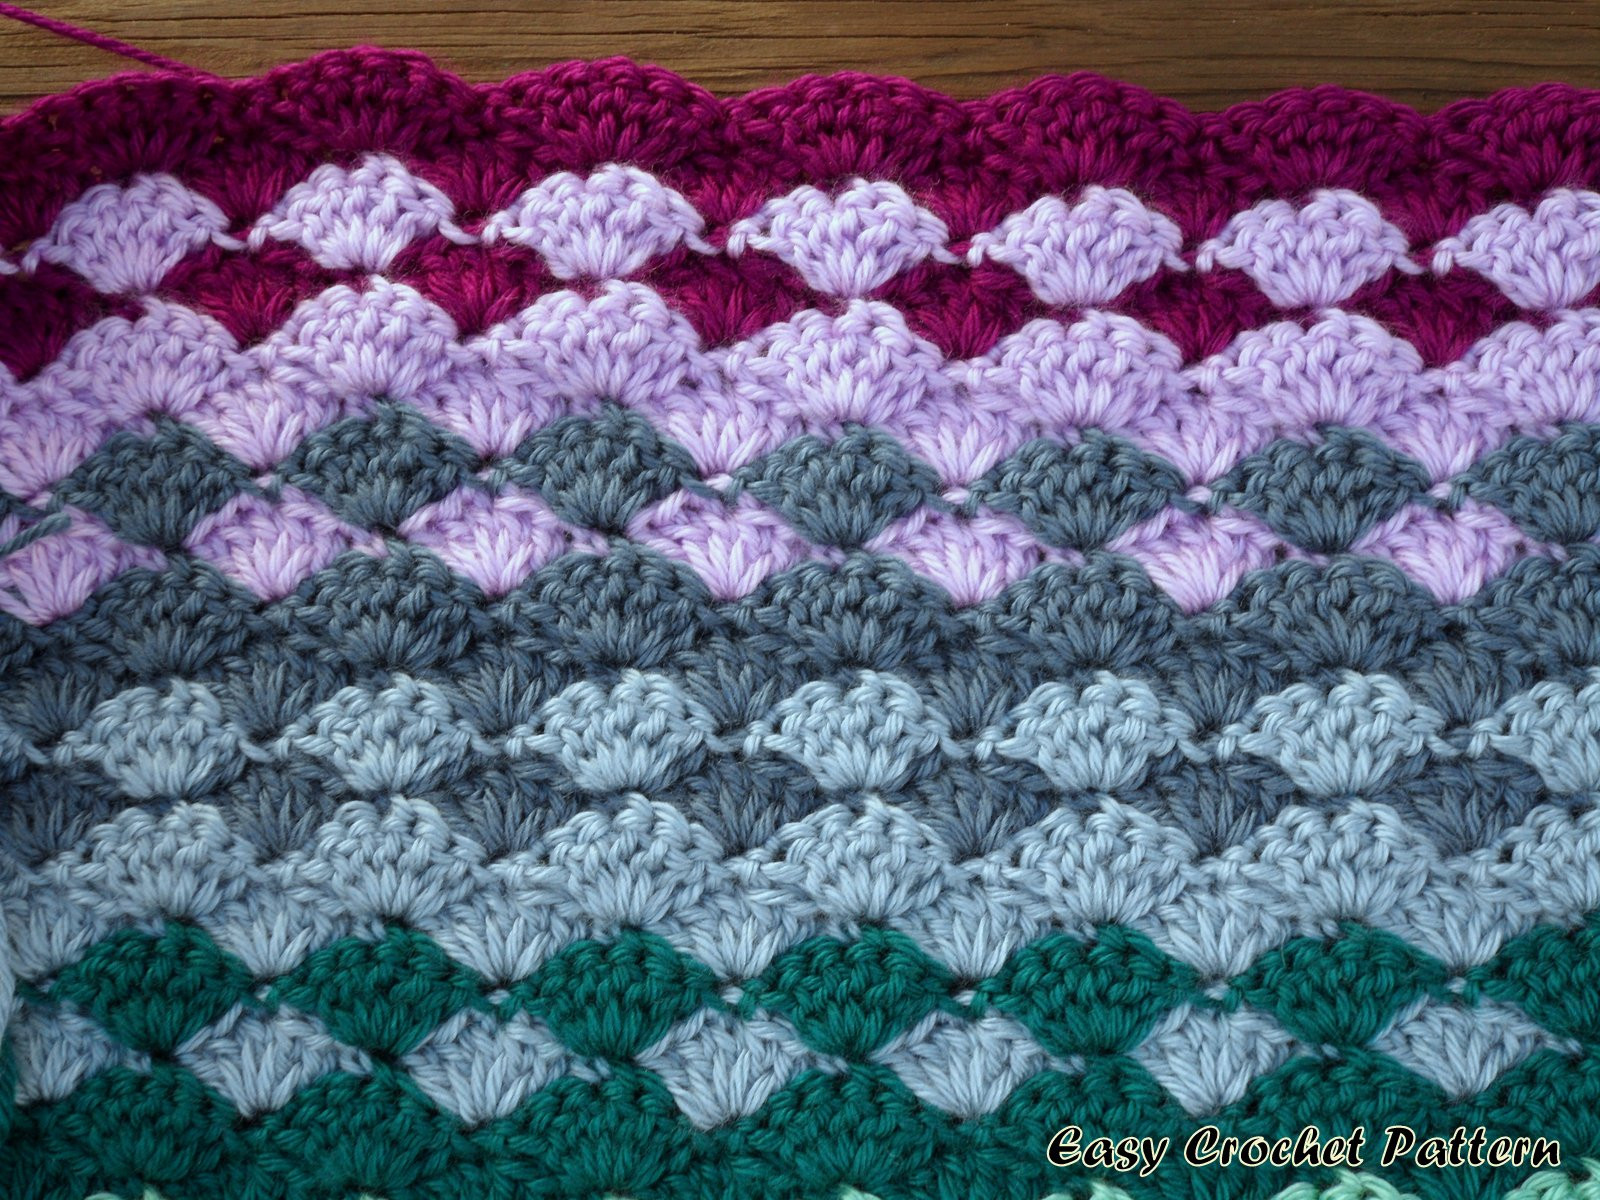 Easy Crochet Afghan Patterns Awesome Easy Crochet Pattern Shell Afghan A New Project Started Of Wonderful 45 Pics Easy Crochet Afghan Patterns